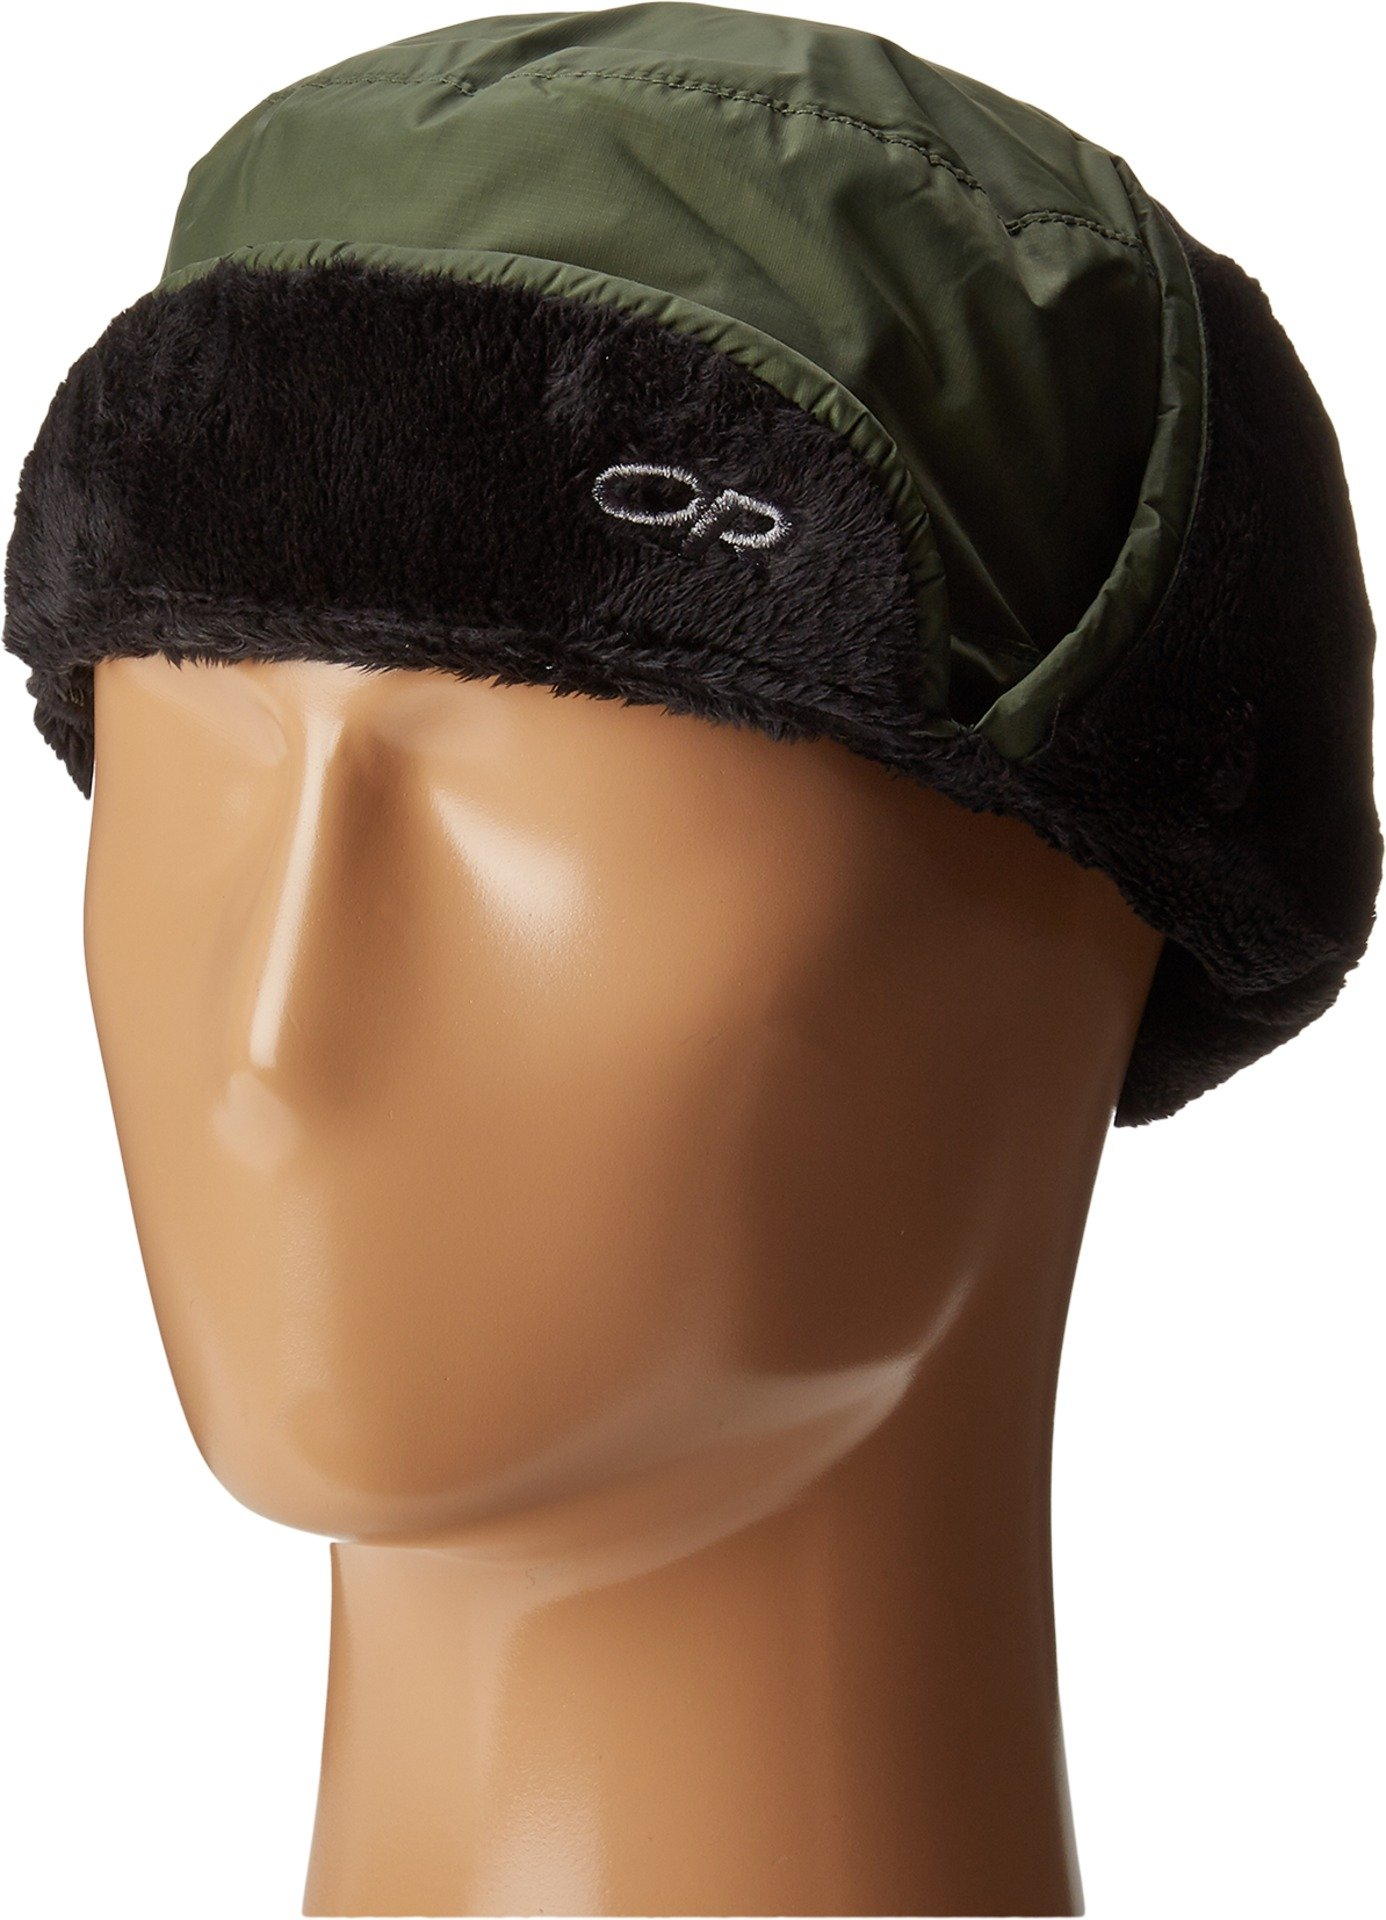 3733cb6dc57fd0 Outdoor Research Frostline Hat, Evergreen, Large 727602172842   eBay